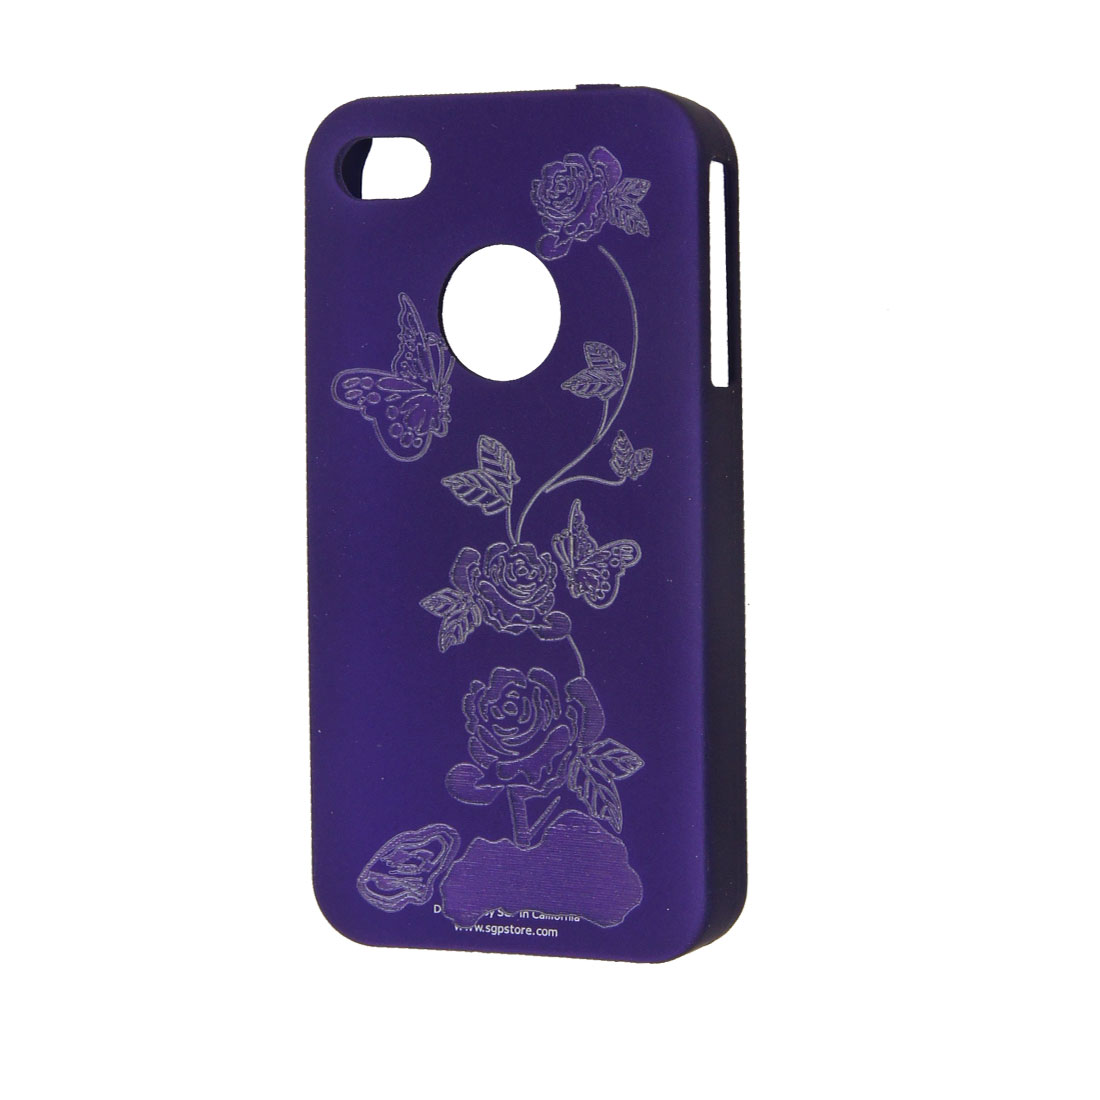 Purple Hard Plastic Carved Butterfly Back Case for iPhone 4 4G 4GS